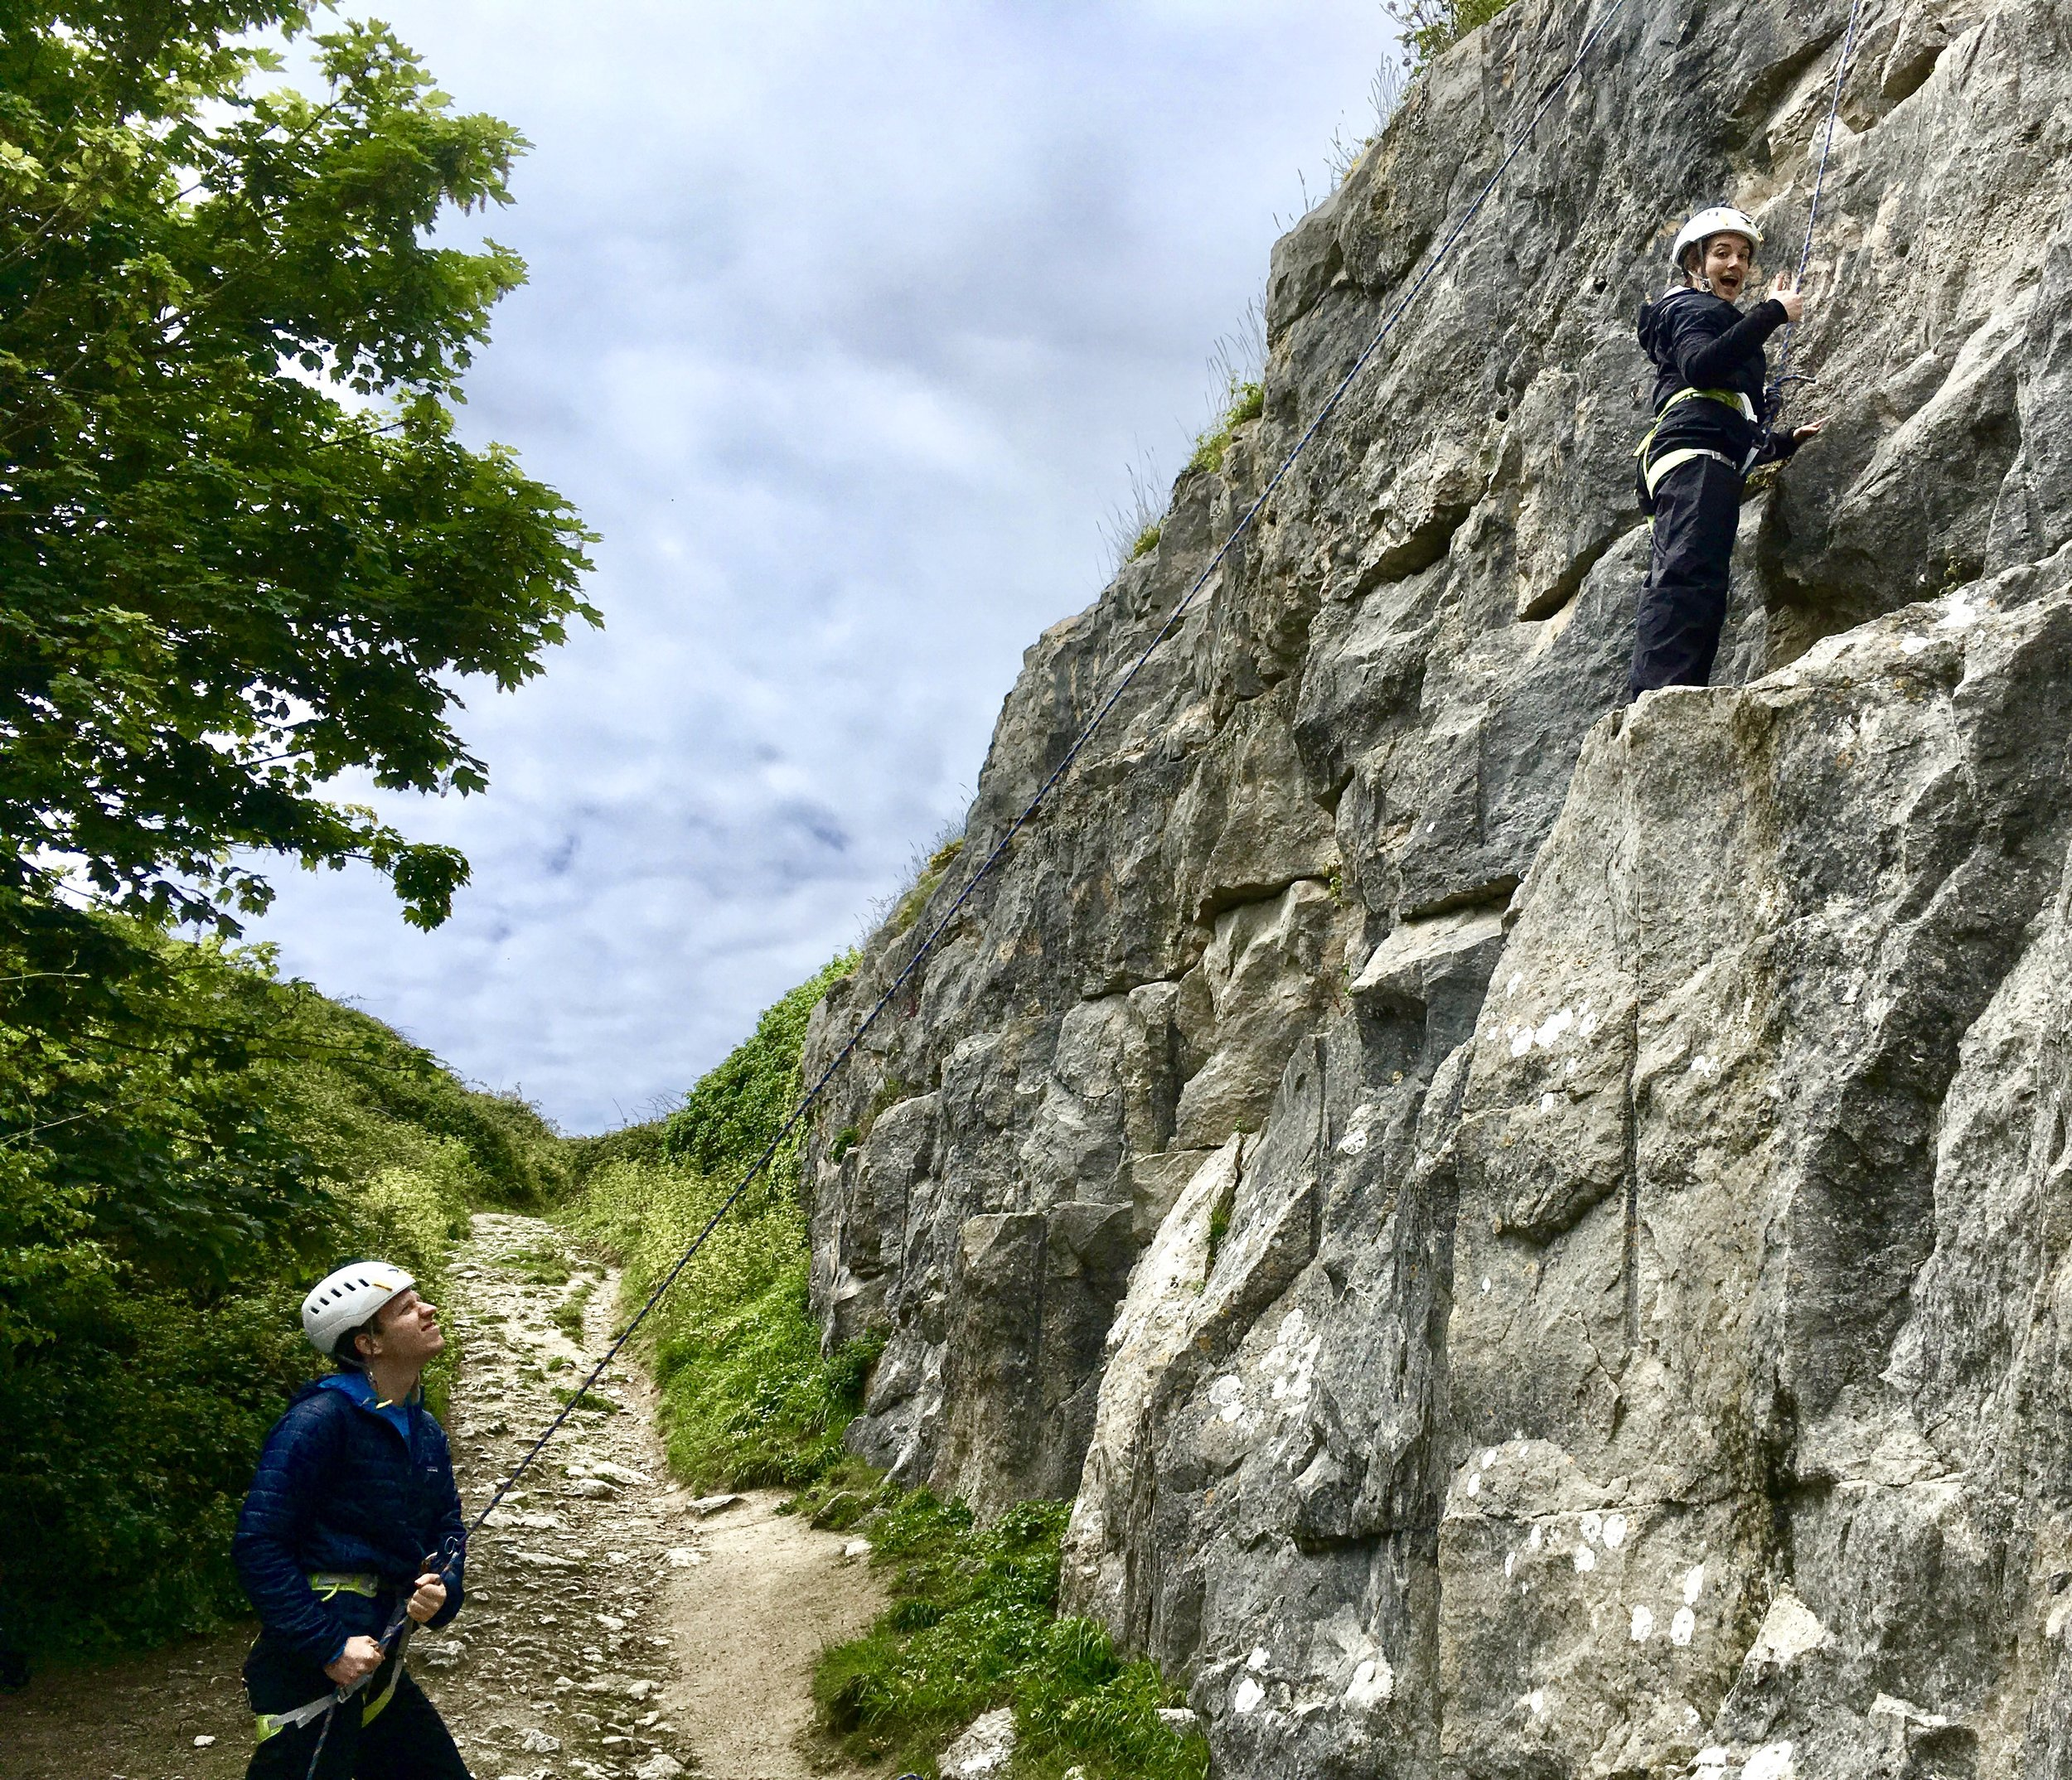 Isabel and Louis - I arranged a one-day climbing trip with Head on Out as a birthday gift and it was a fantastic decision! Ed took us for an awesome day of climbing in Dorset. Ed is an excellent instructor - knowledgeable, patient, enthusiastic and fun! The day was extremely well organised - including transportation and a variety of well thought through climbing routes which perfectly suited our mix of experience (one of us a regular boulderer and the other a nervous beginner). It was wonderful to get out of London for the day (and felt like we had been on a mini-break!). Whether you are an experienced climber, or are just starting out and curious about climbing, we would highly recommend taking a trip with Head On Out - our day could not have been better!